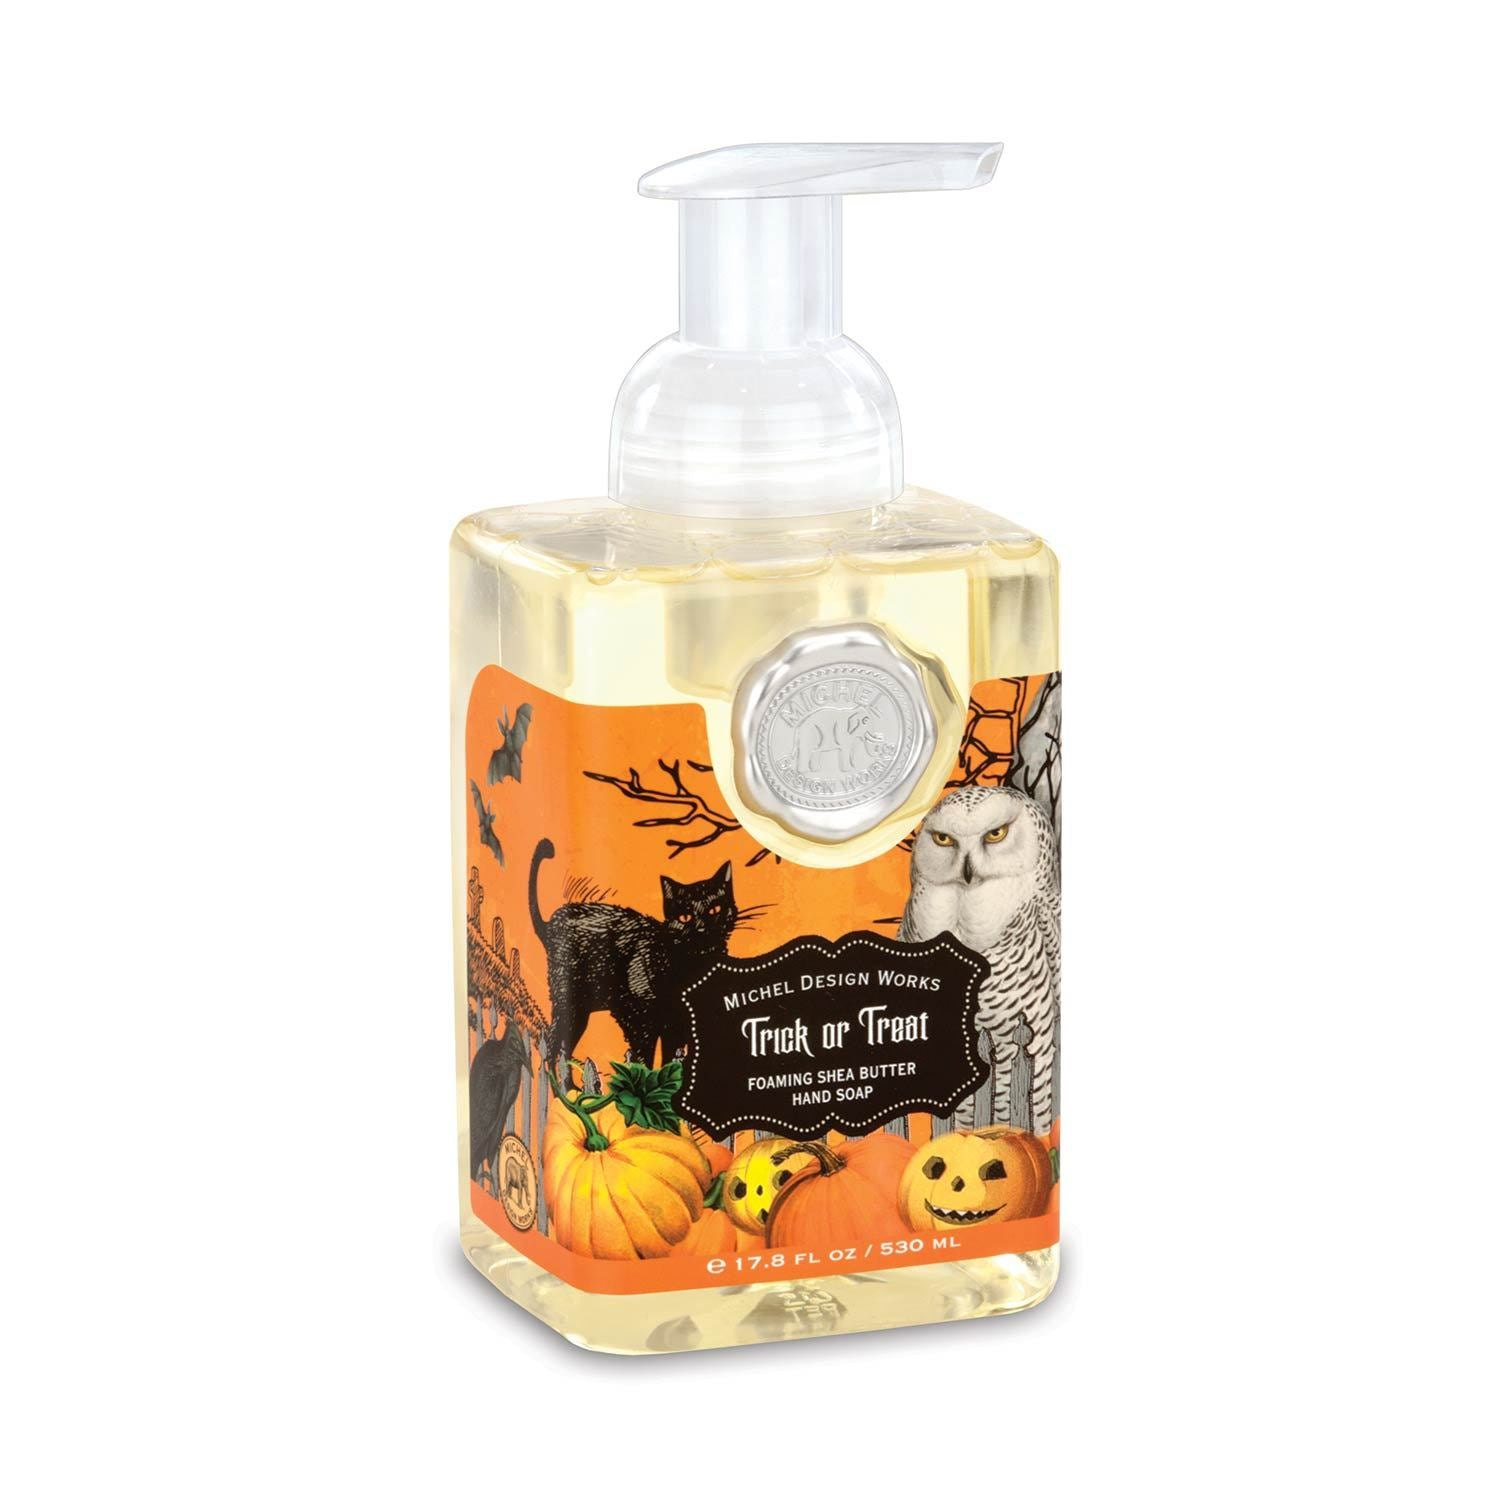 Trick or Treat Foaming Hand Soap